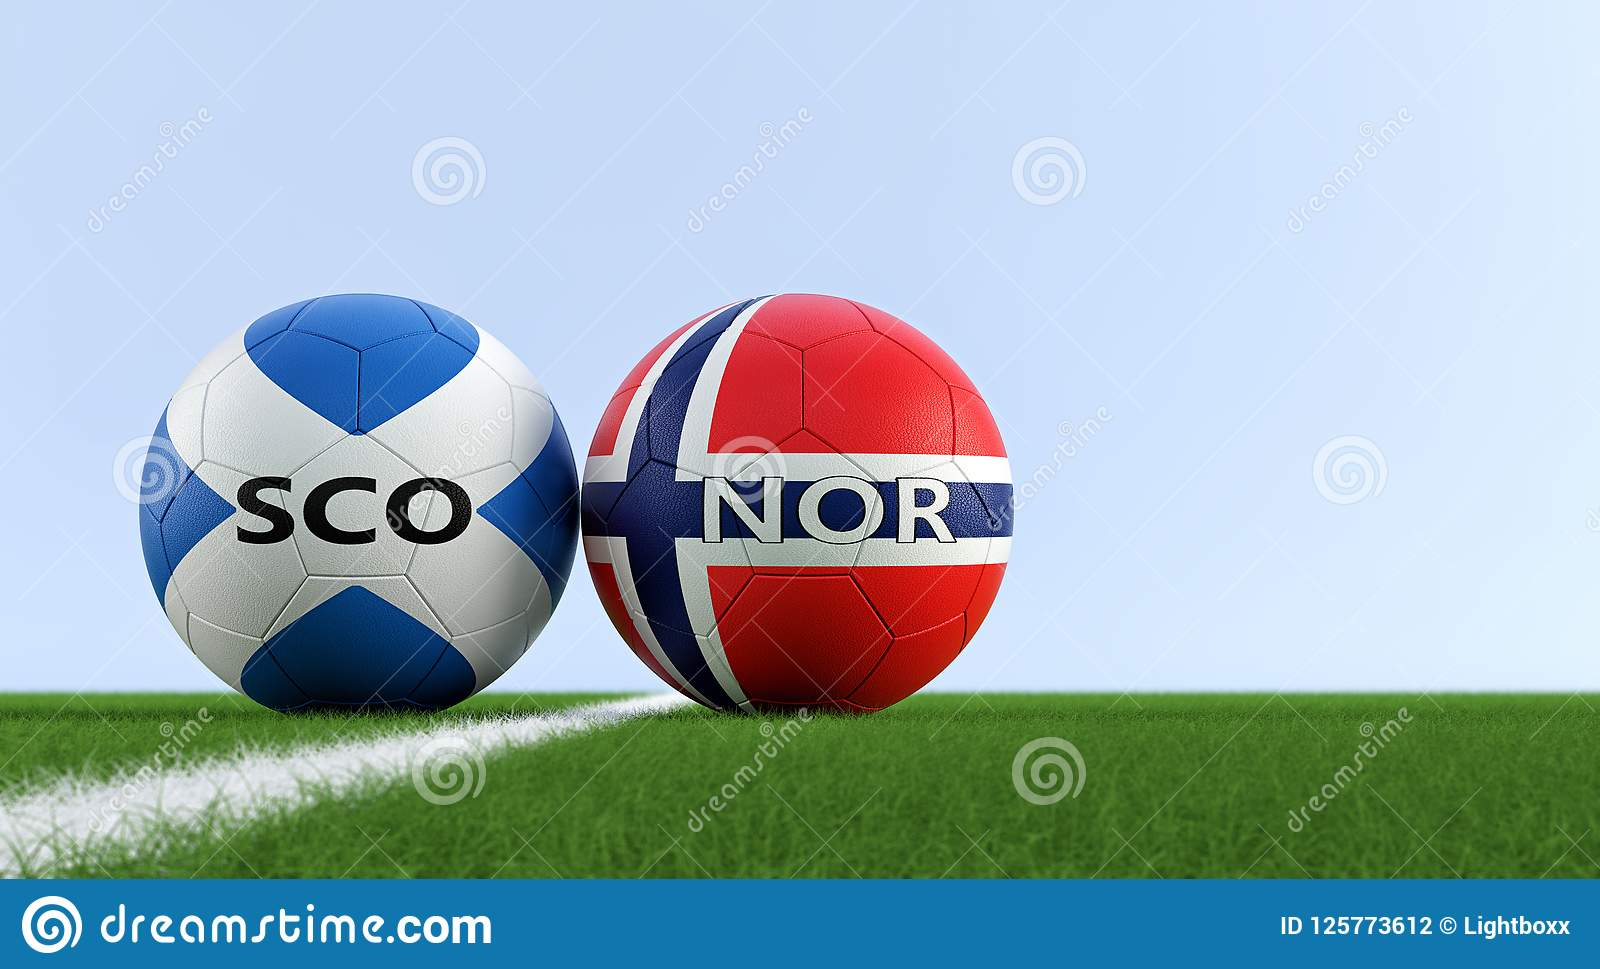 a2f059e09 Norway Soccer Match - Soccer balls in Scotland and Norway national colors on